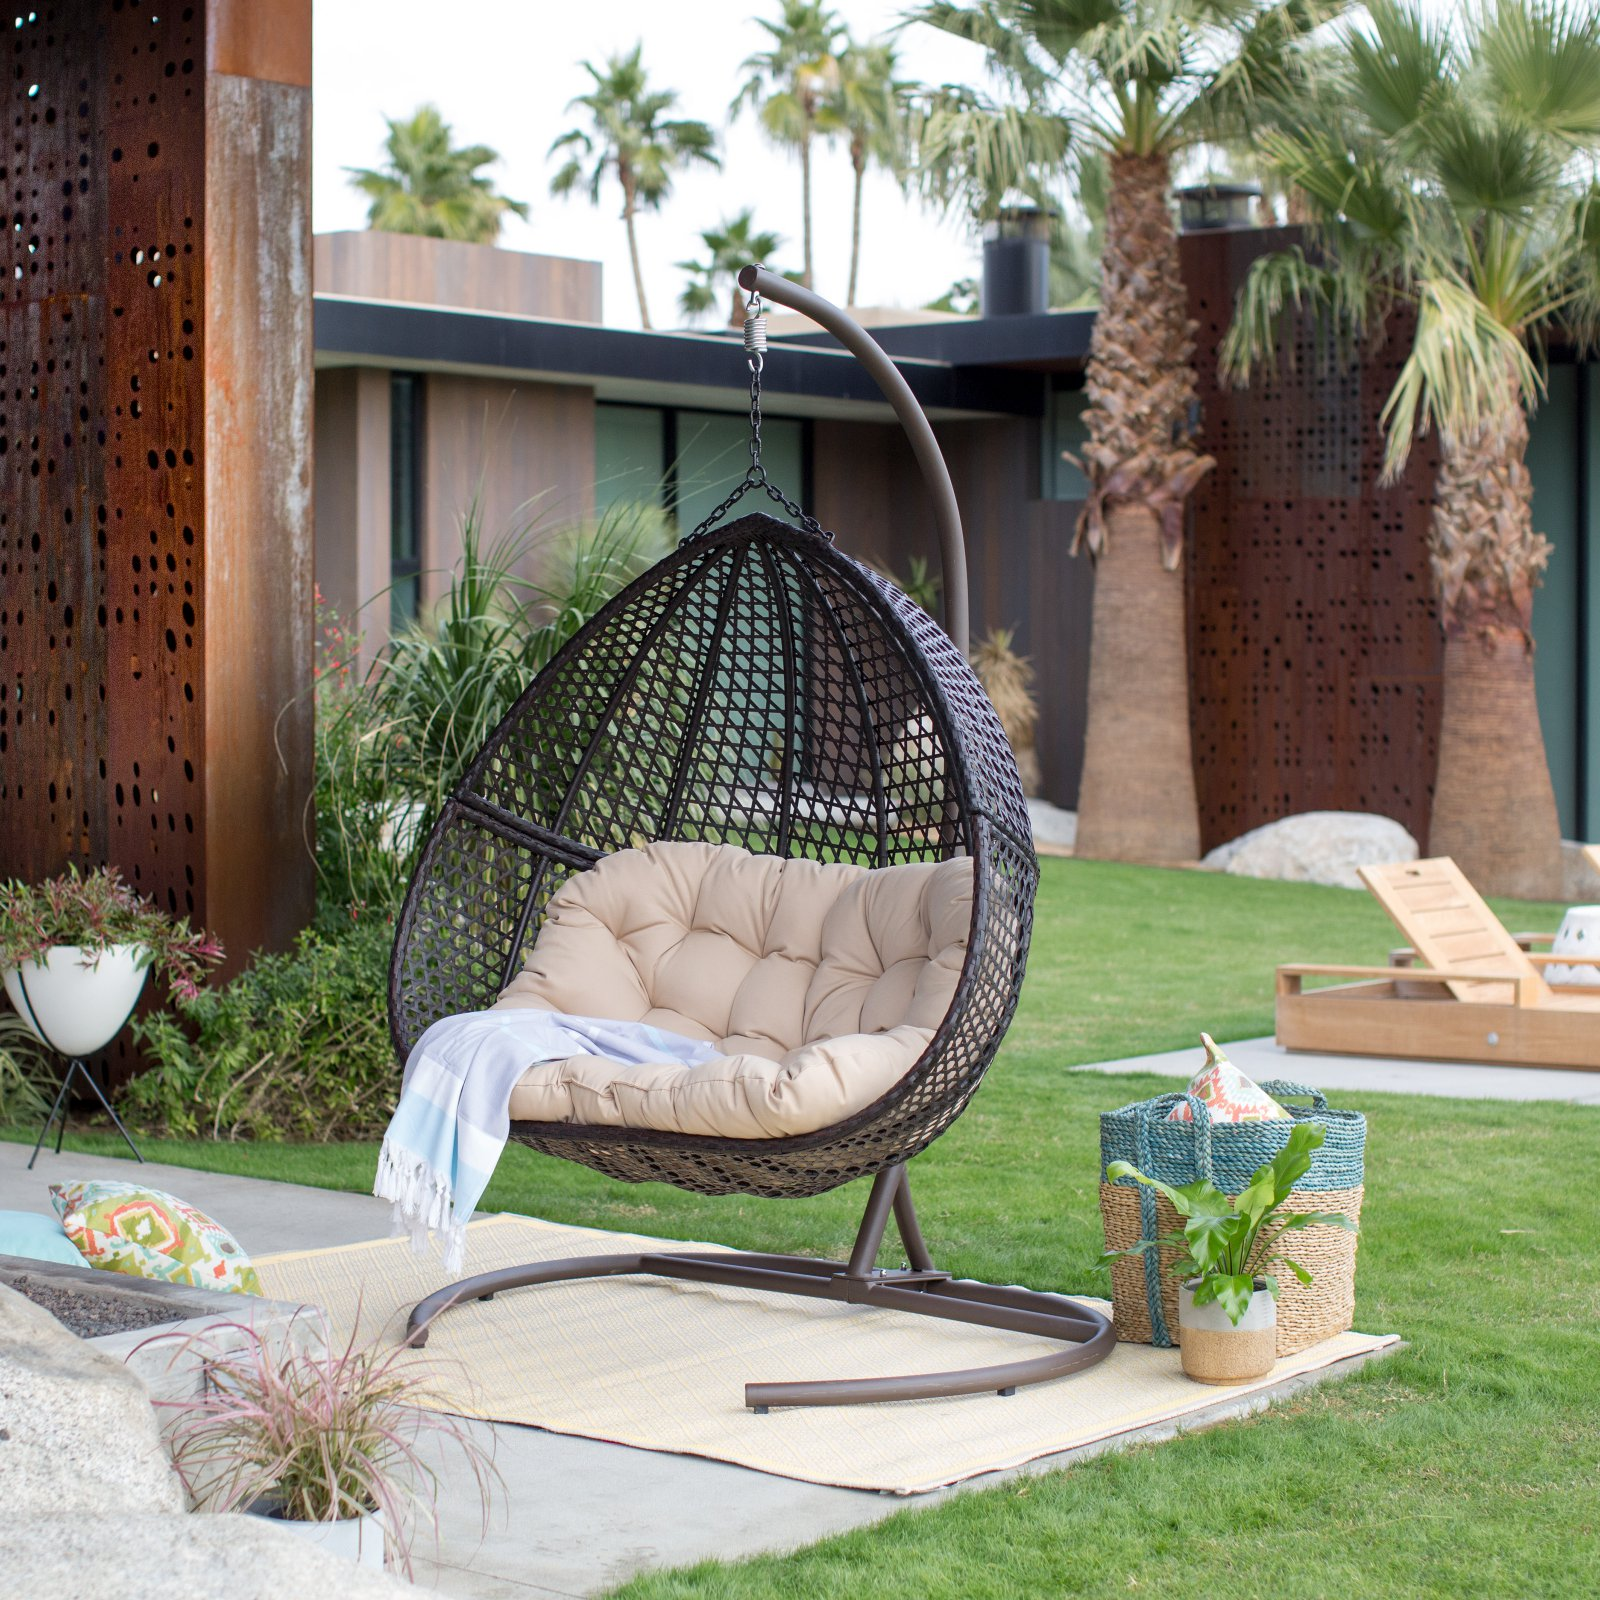 hanging patio chairs room layout design ideas rh mf mcmafs alvahz aevy store hanging lawn chairs in garage hanging patio chair for sale